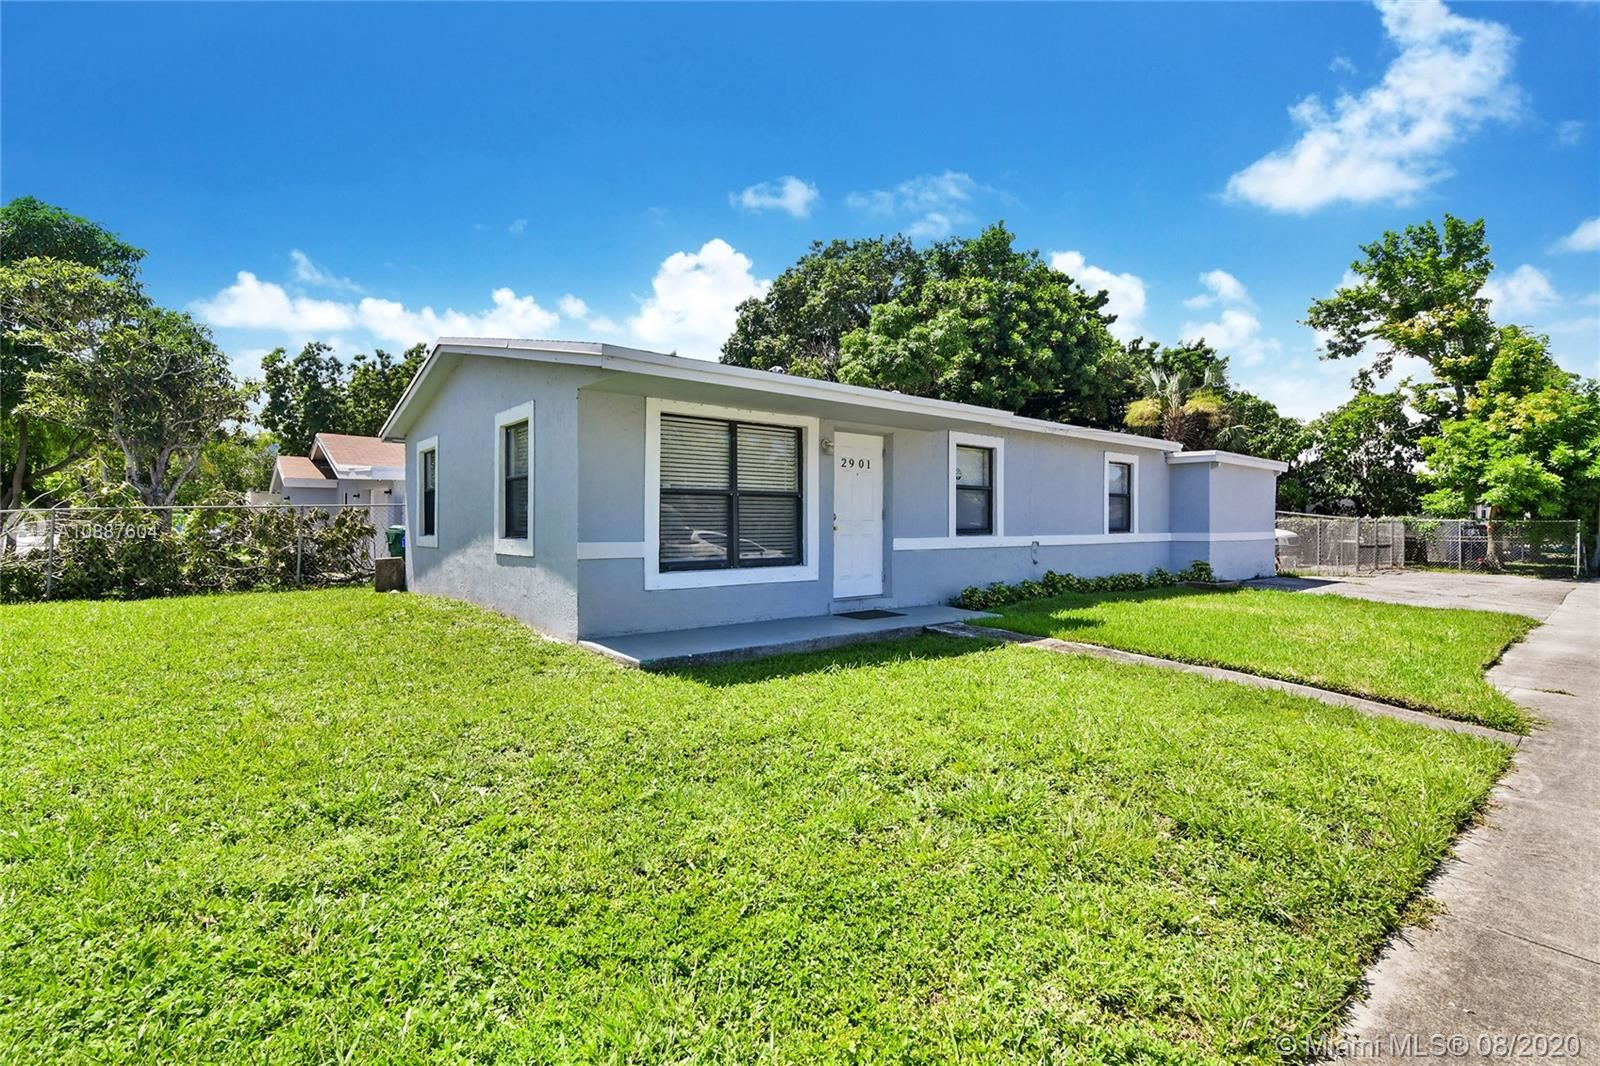 2901 NW 7th Ct, Fort Lauderdale, FL 33311 - #: A10887604